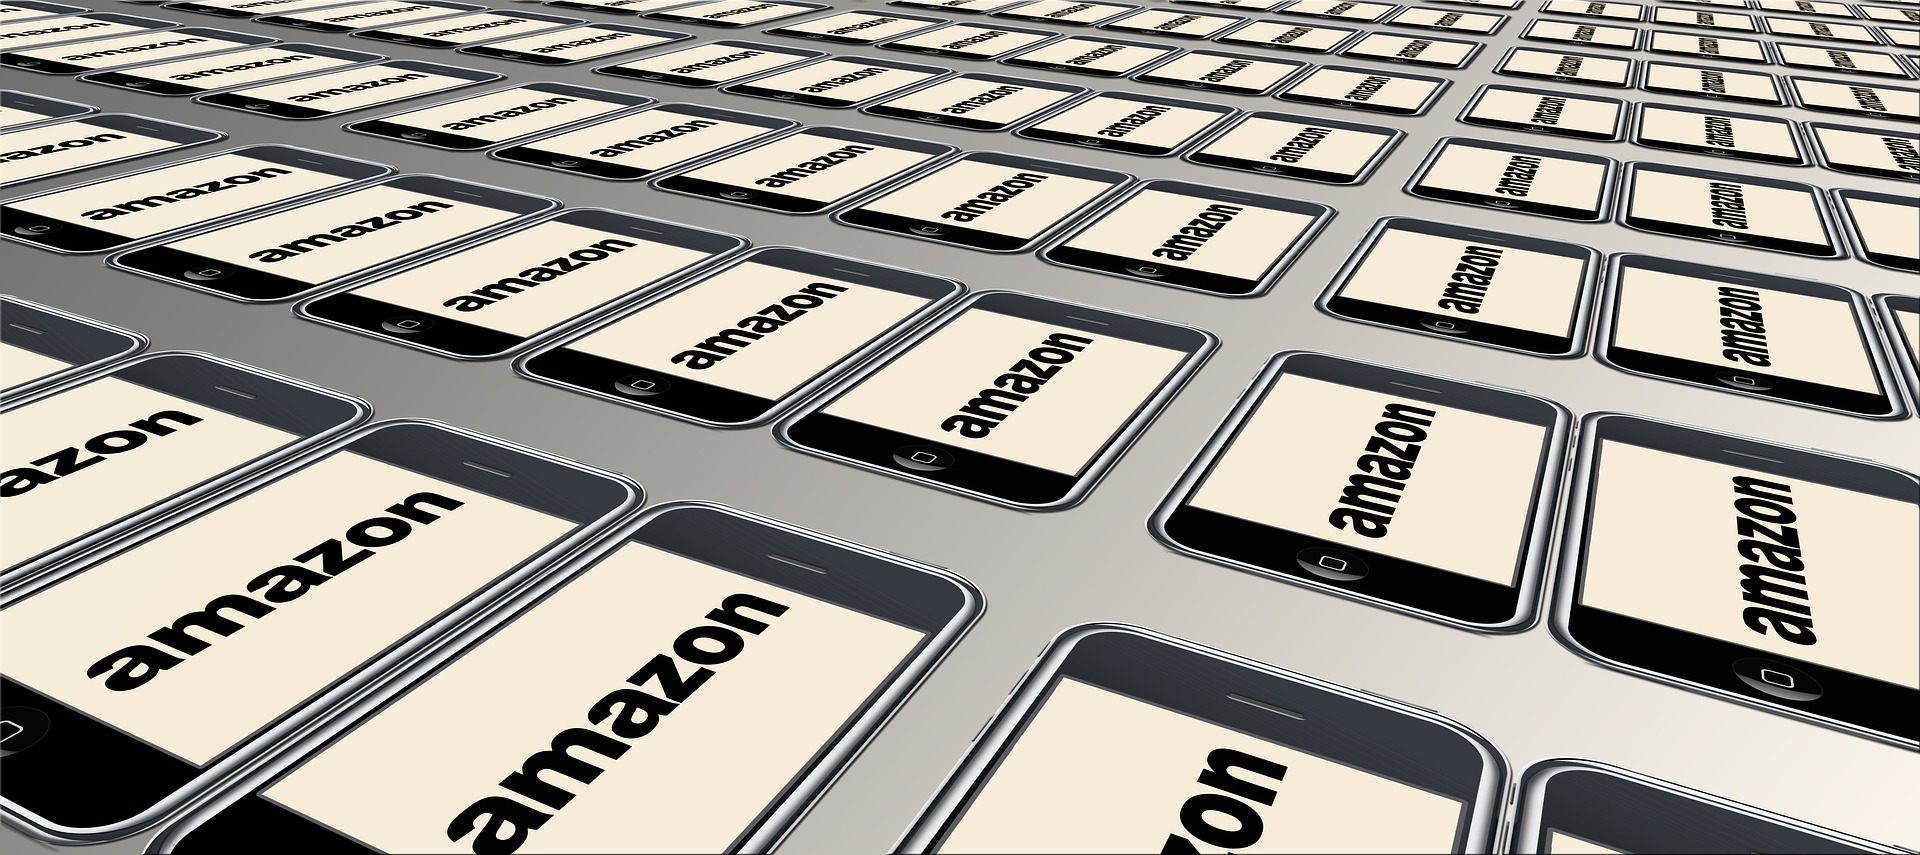 how do i start an amazon fba business